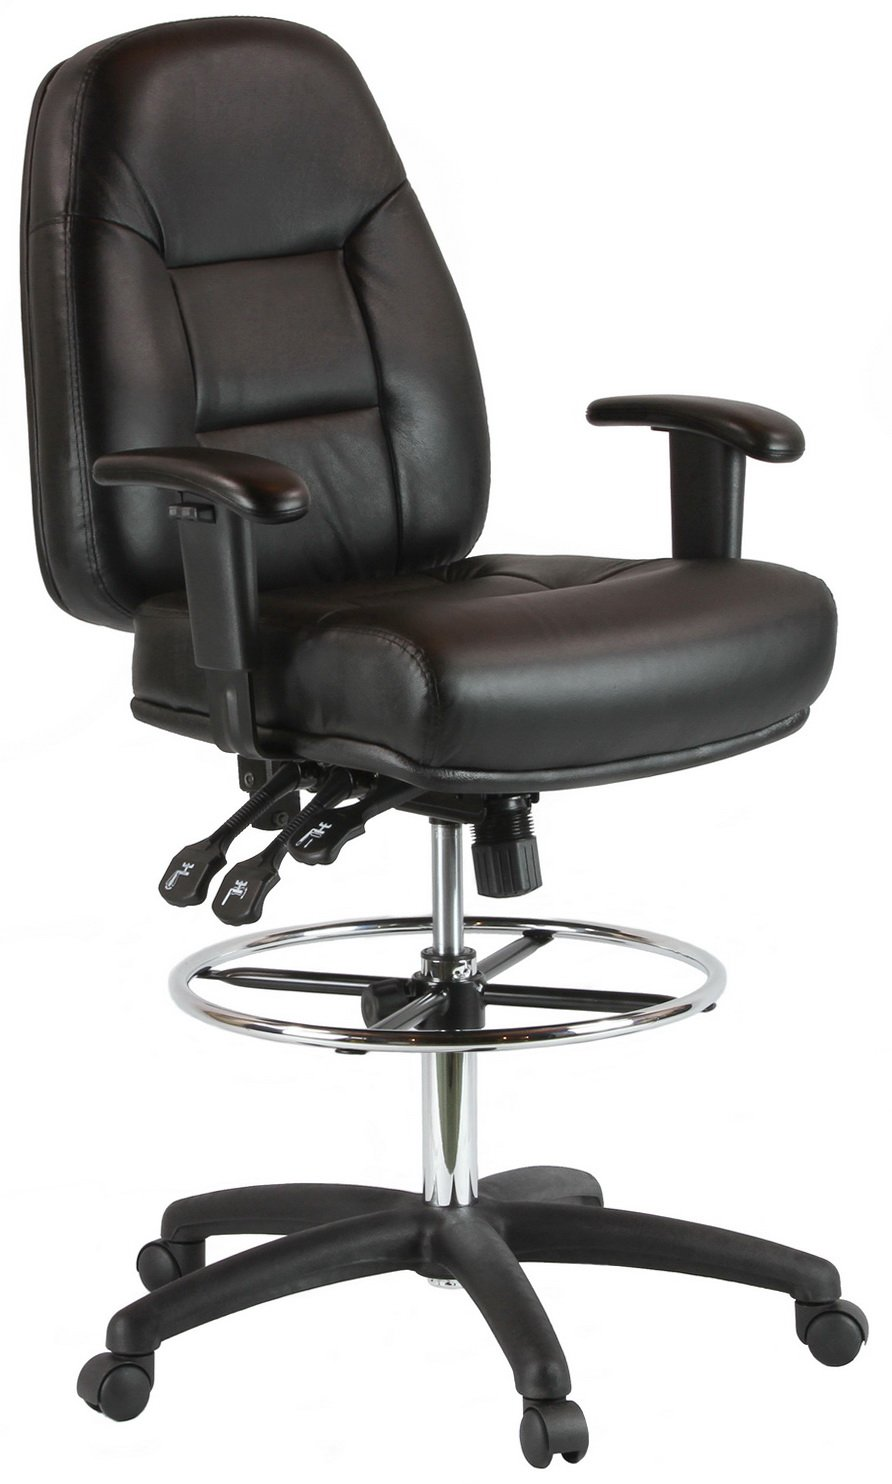 Harwick Premium Leather Drafting Chair with Arms Black by Harwick